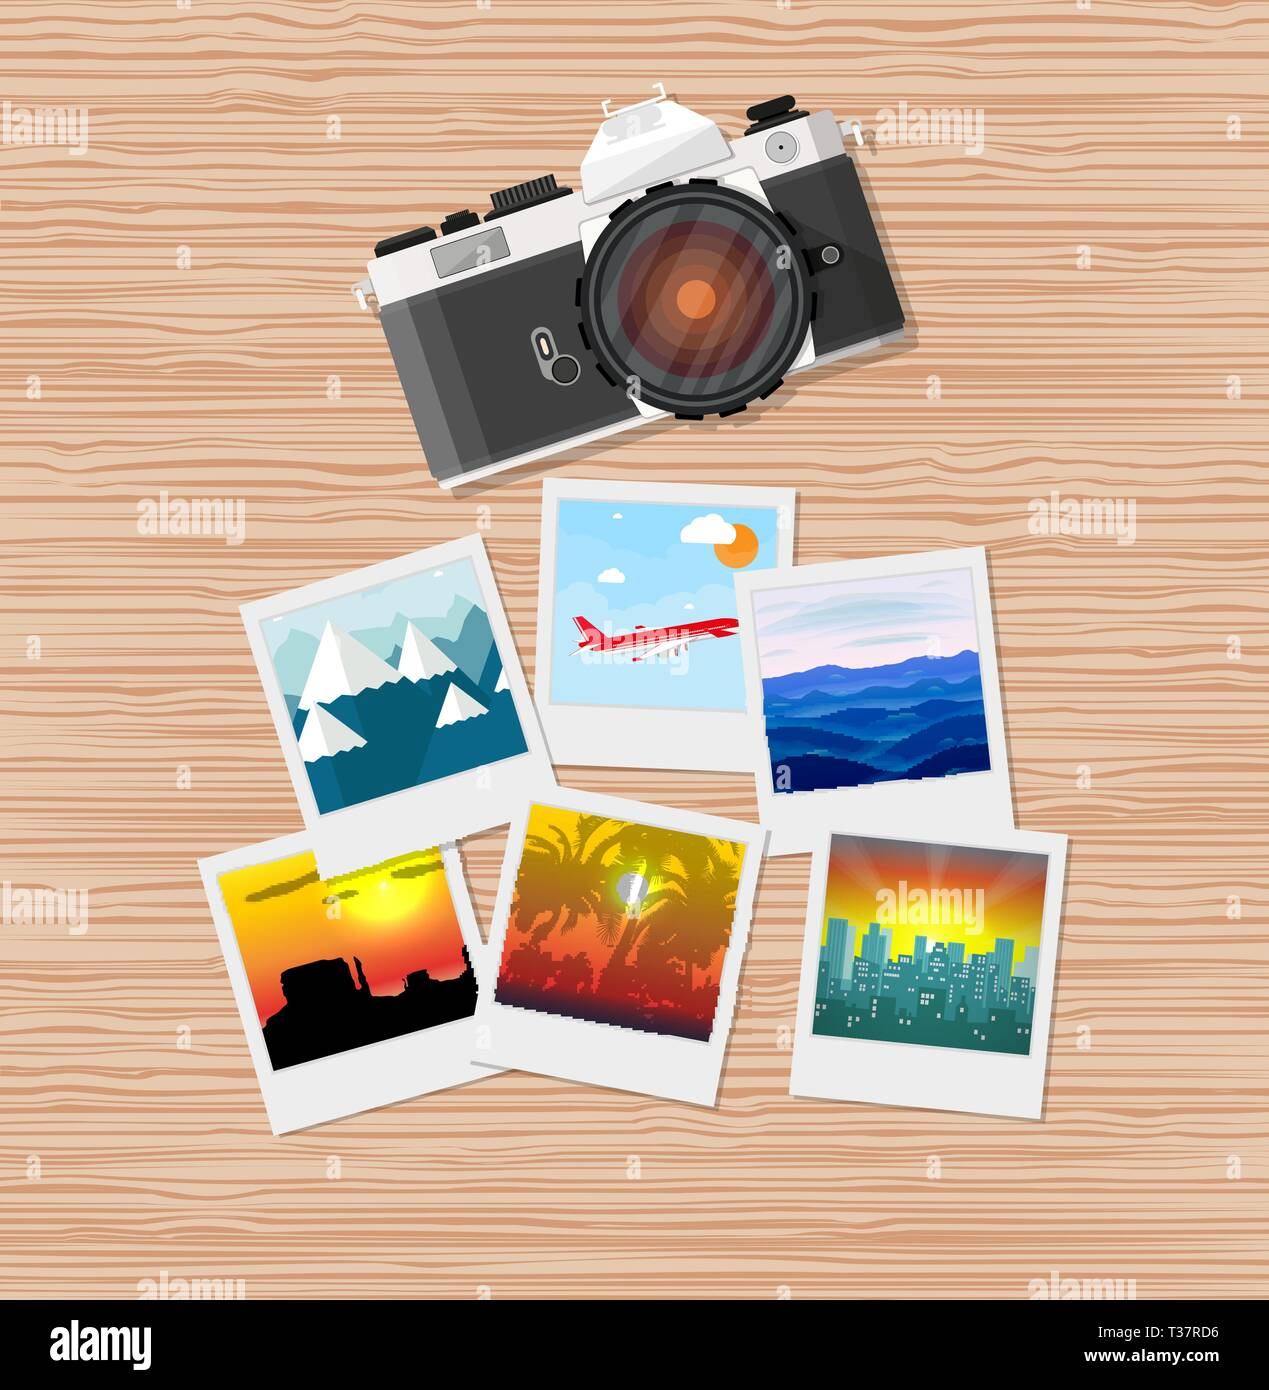 Wooden travellers desk with photos and camera. travel and vacation concept. vector illustration in flat design - Stock Vector